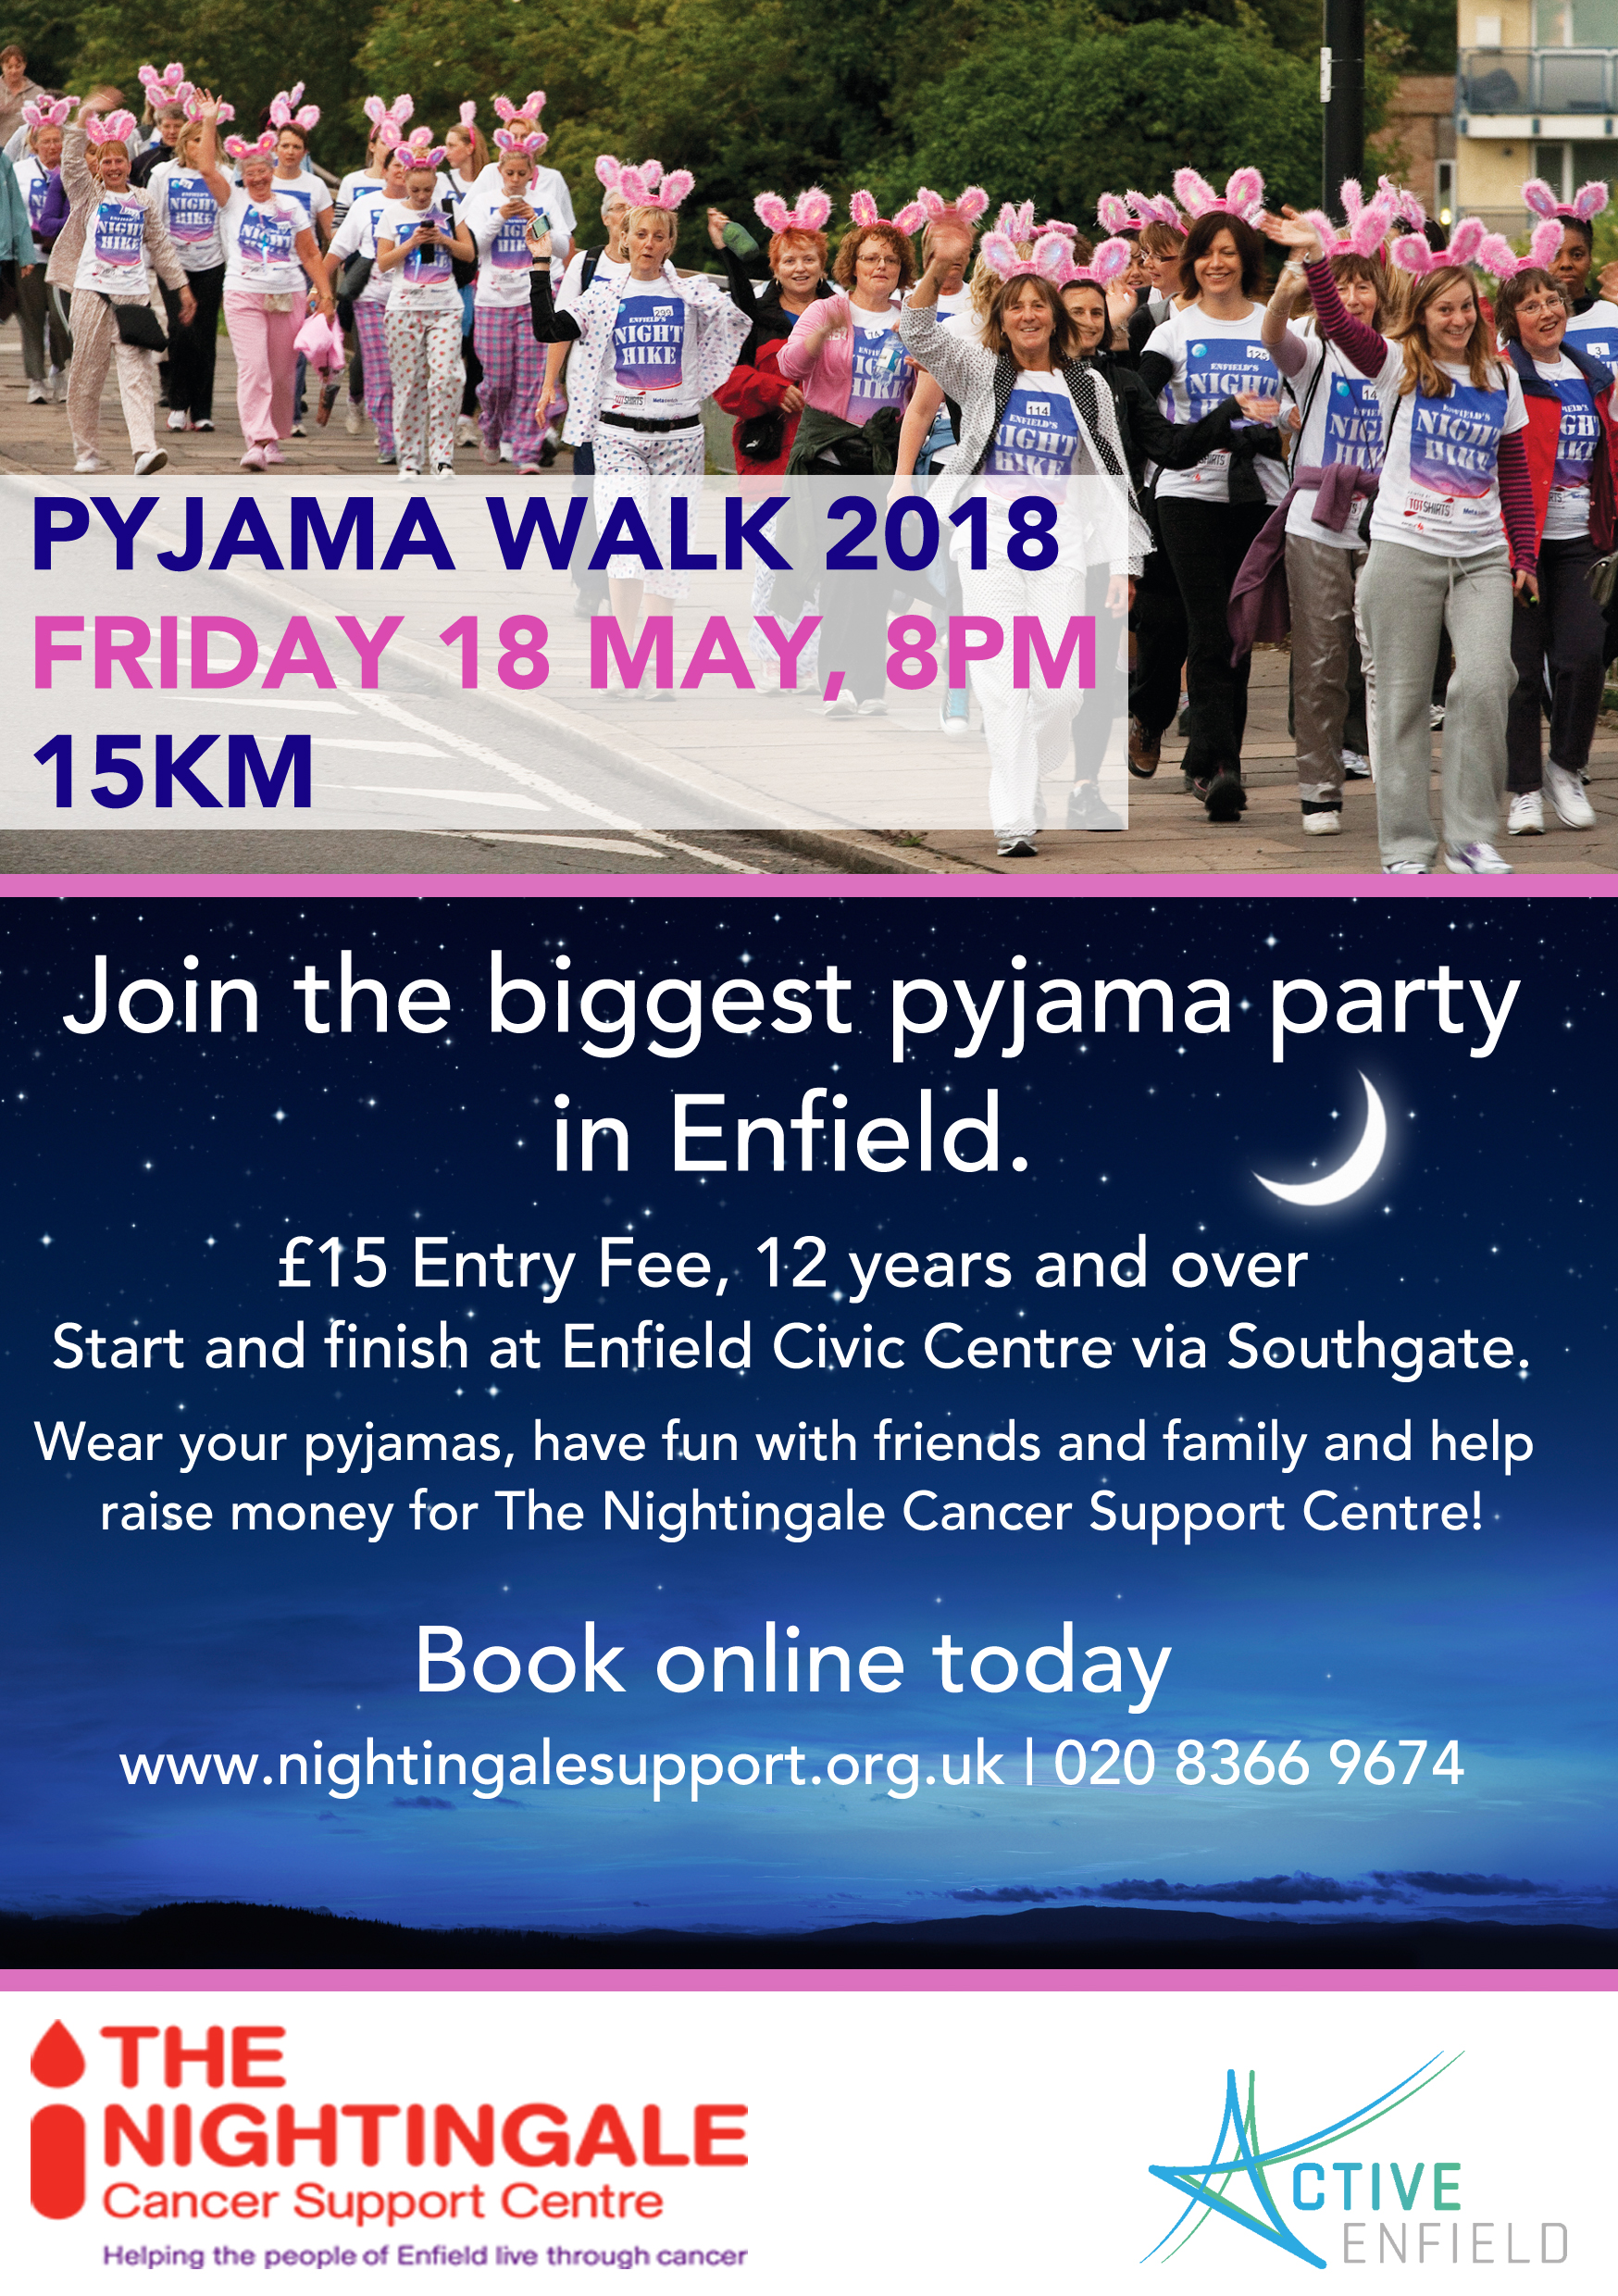 The Nightingale Pyjama Walk - Night Hike 2018